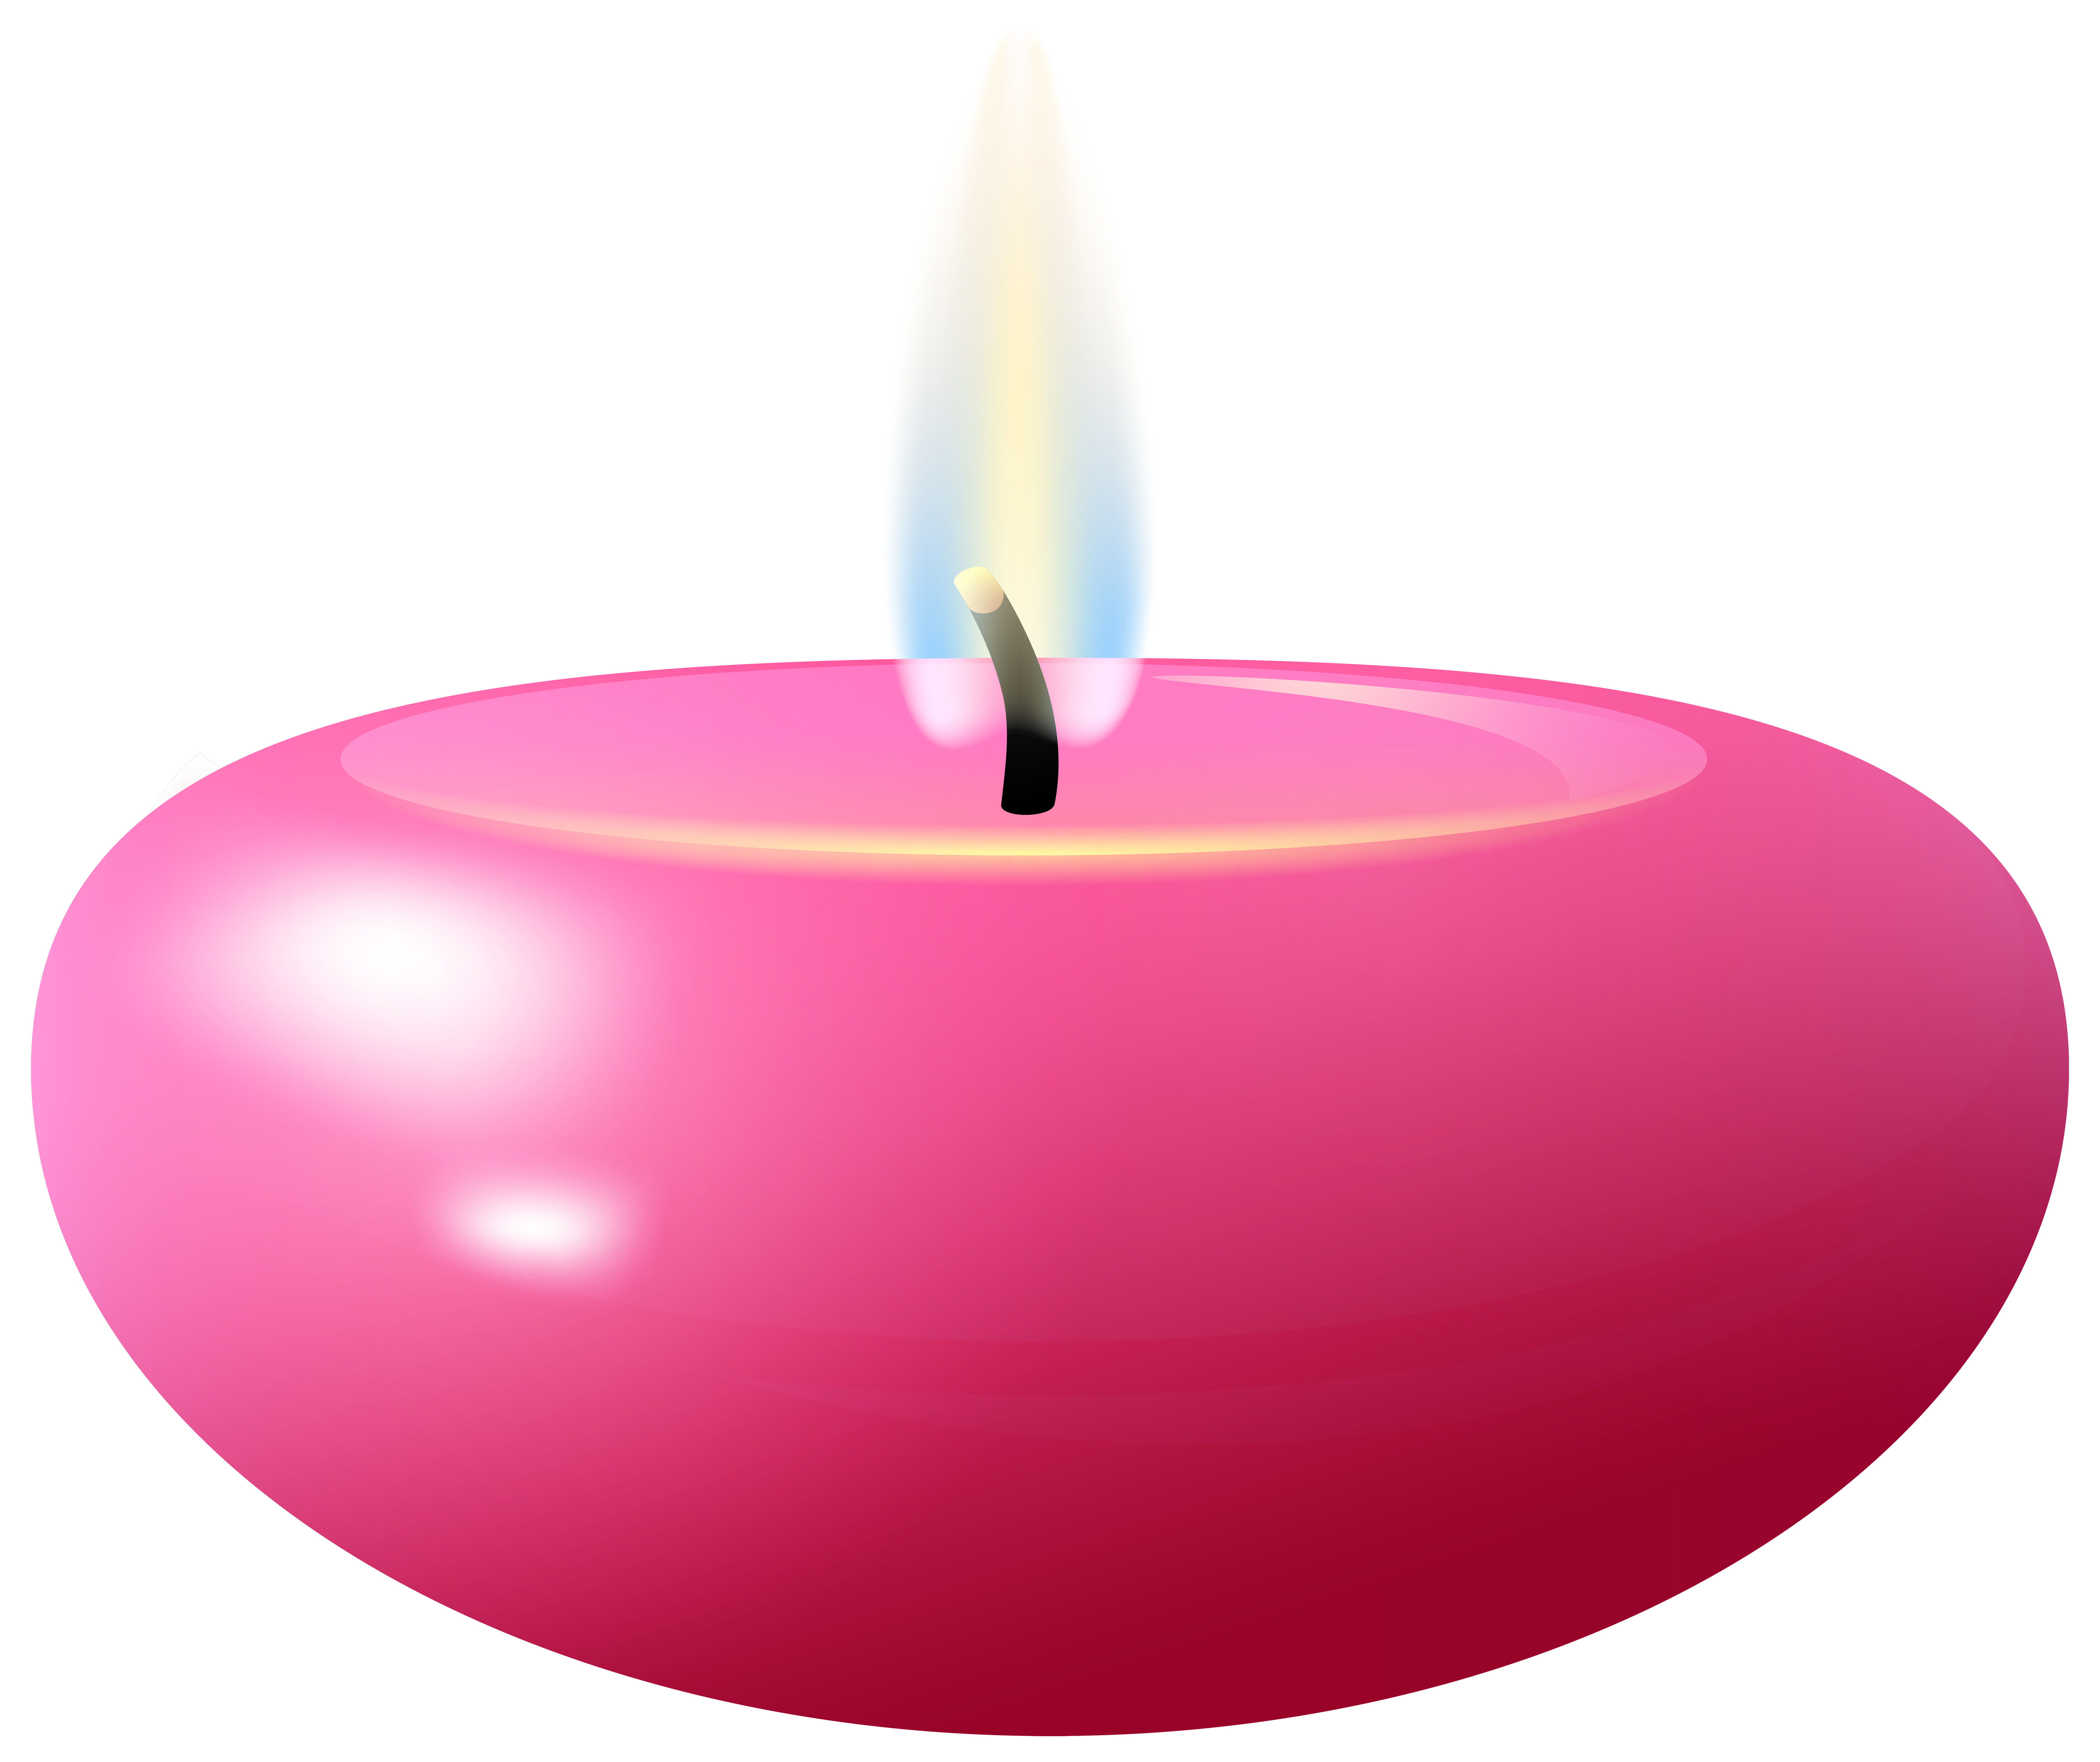 Clipart books candle. Pink candles png clip